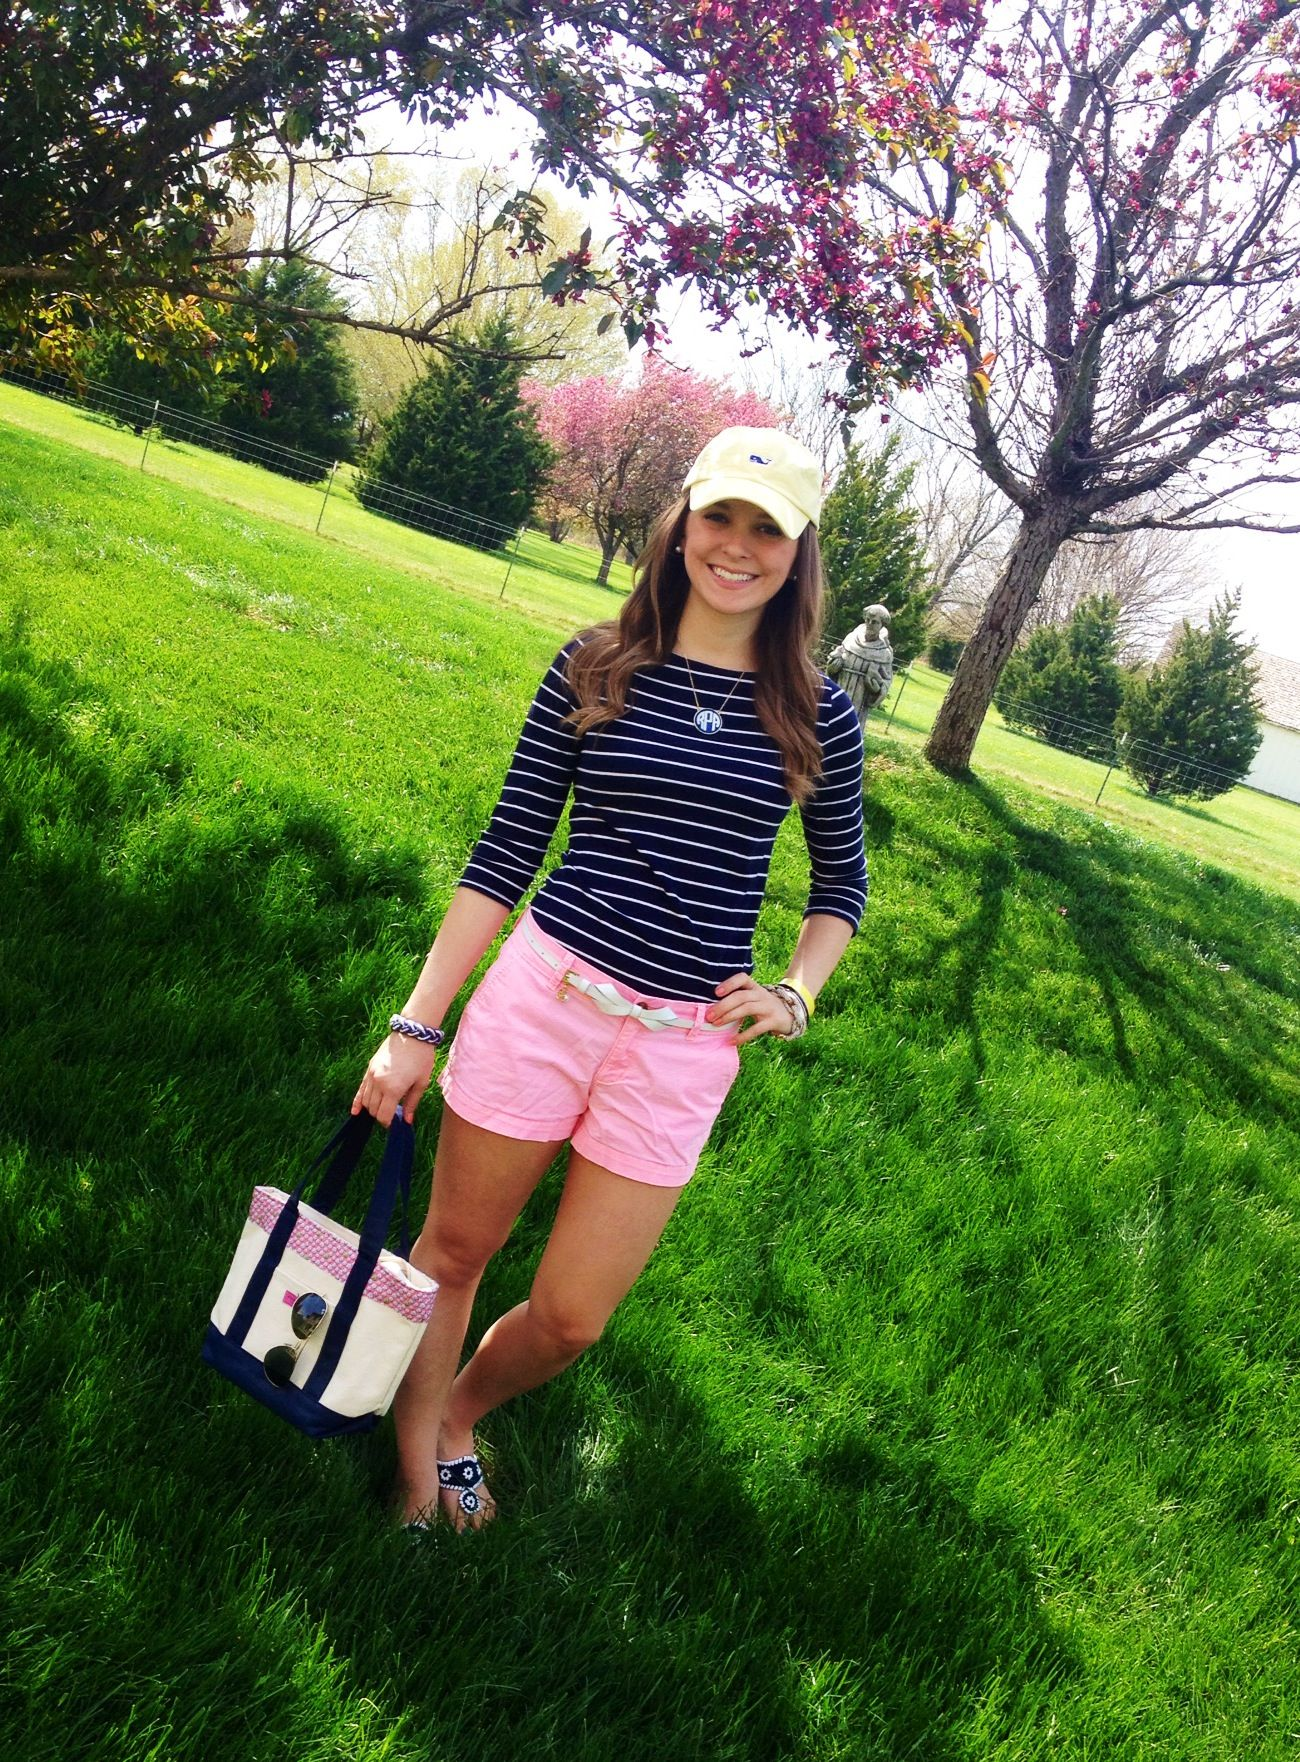 Vineyard Vines Lilly Pulitzer And Jack Rogers Always